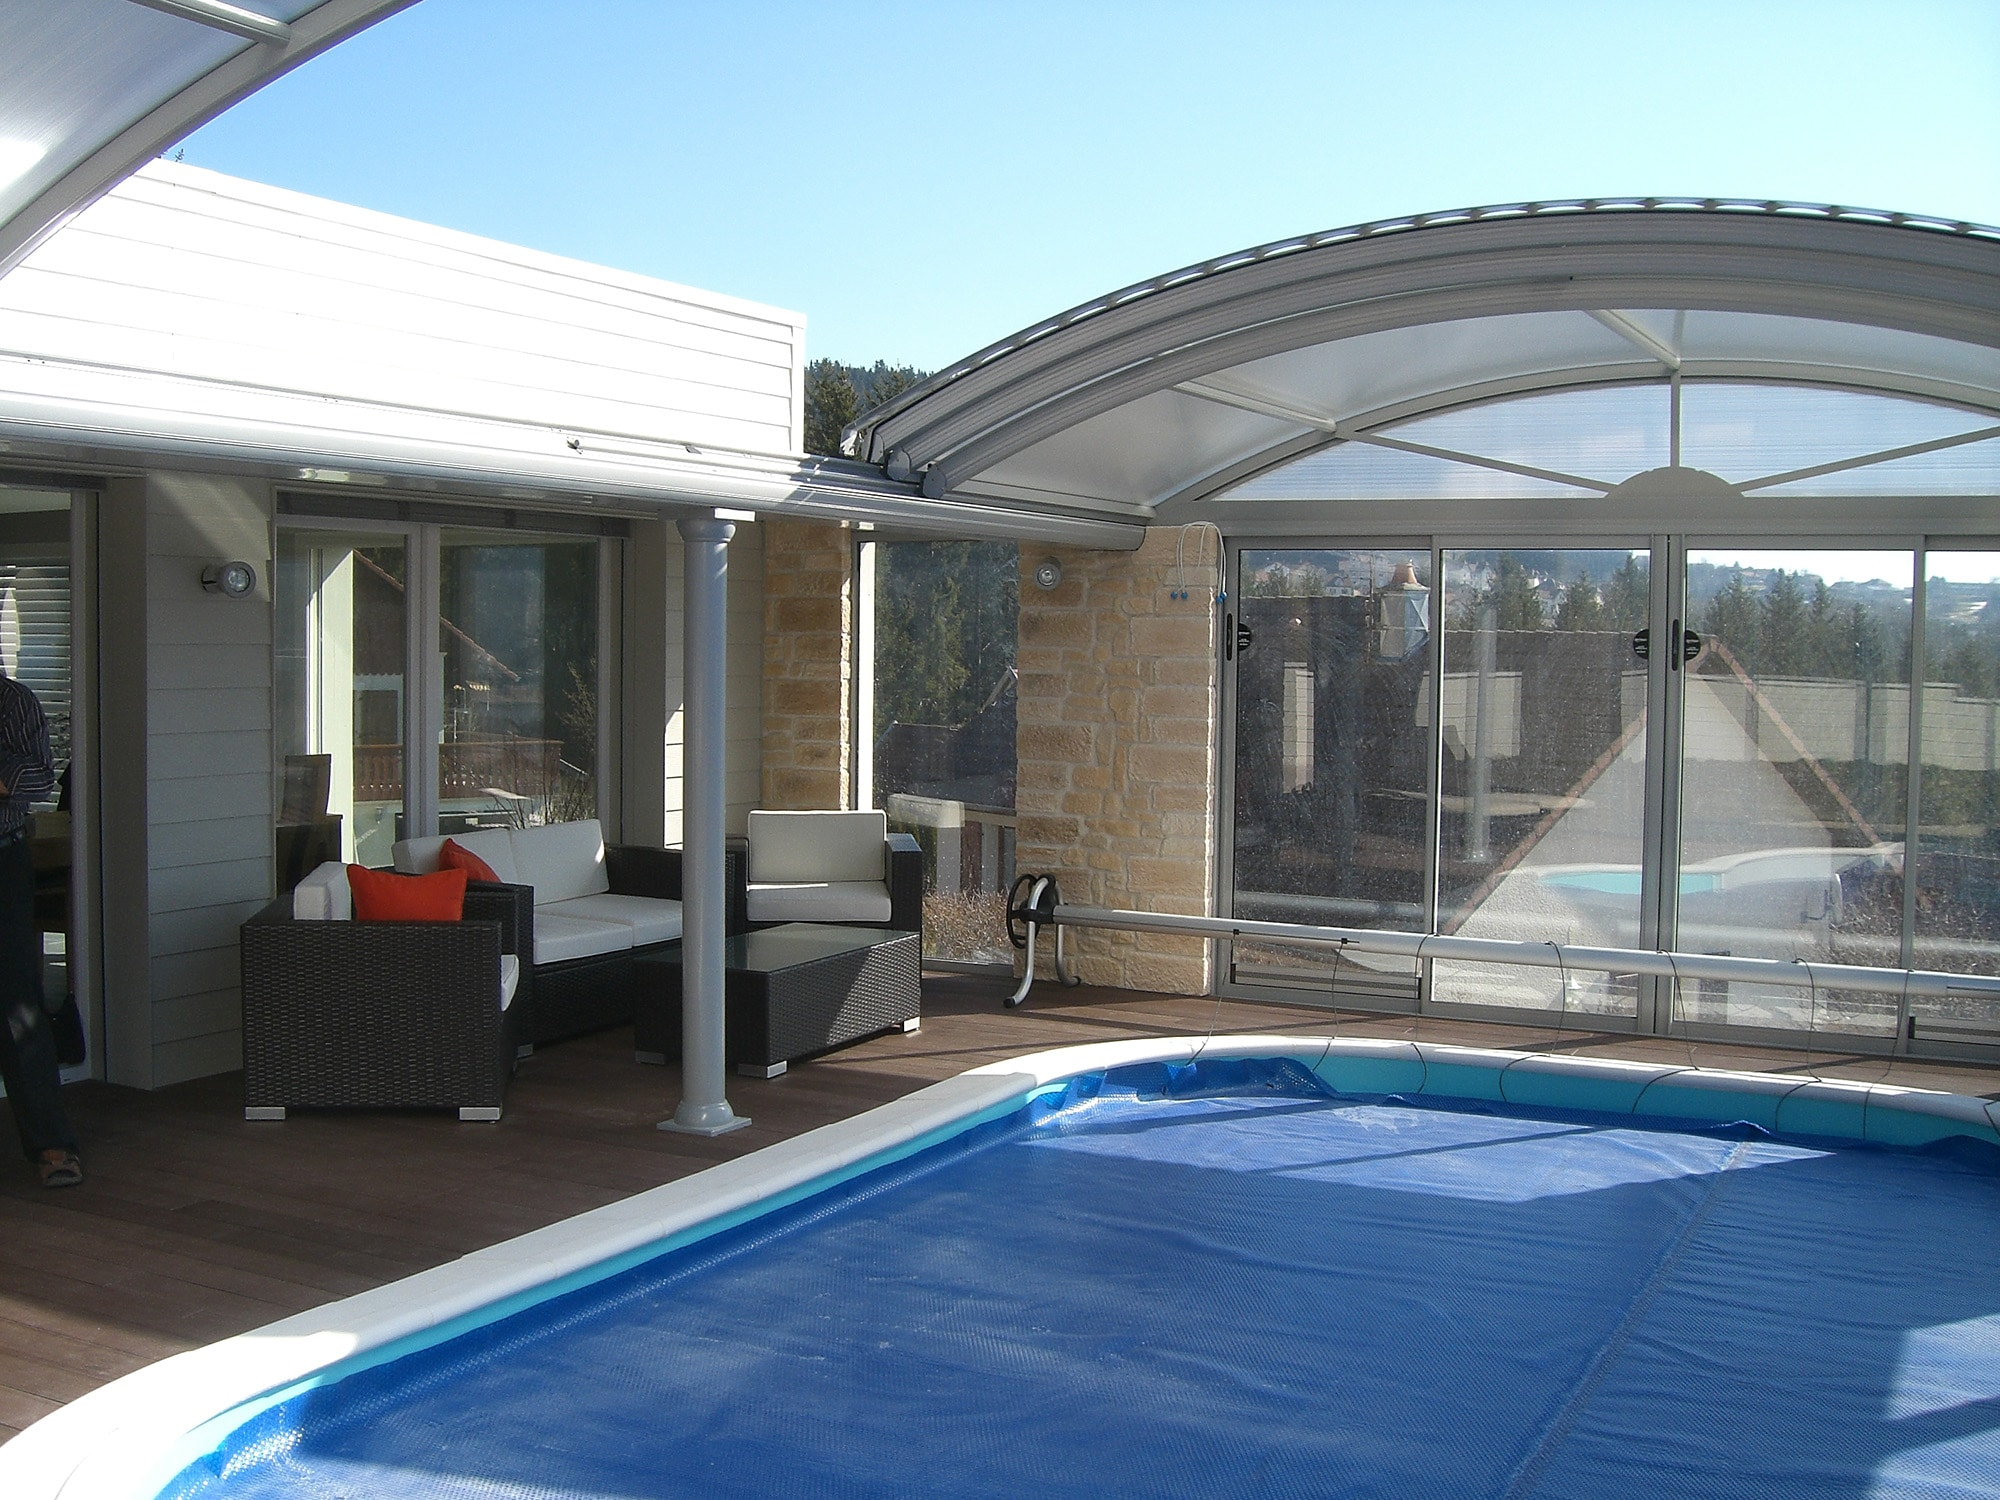 D coration terrasse couverte piscine 23 montpellier for Piscine montpellier